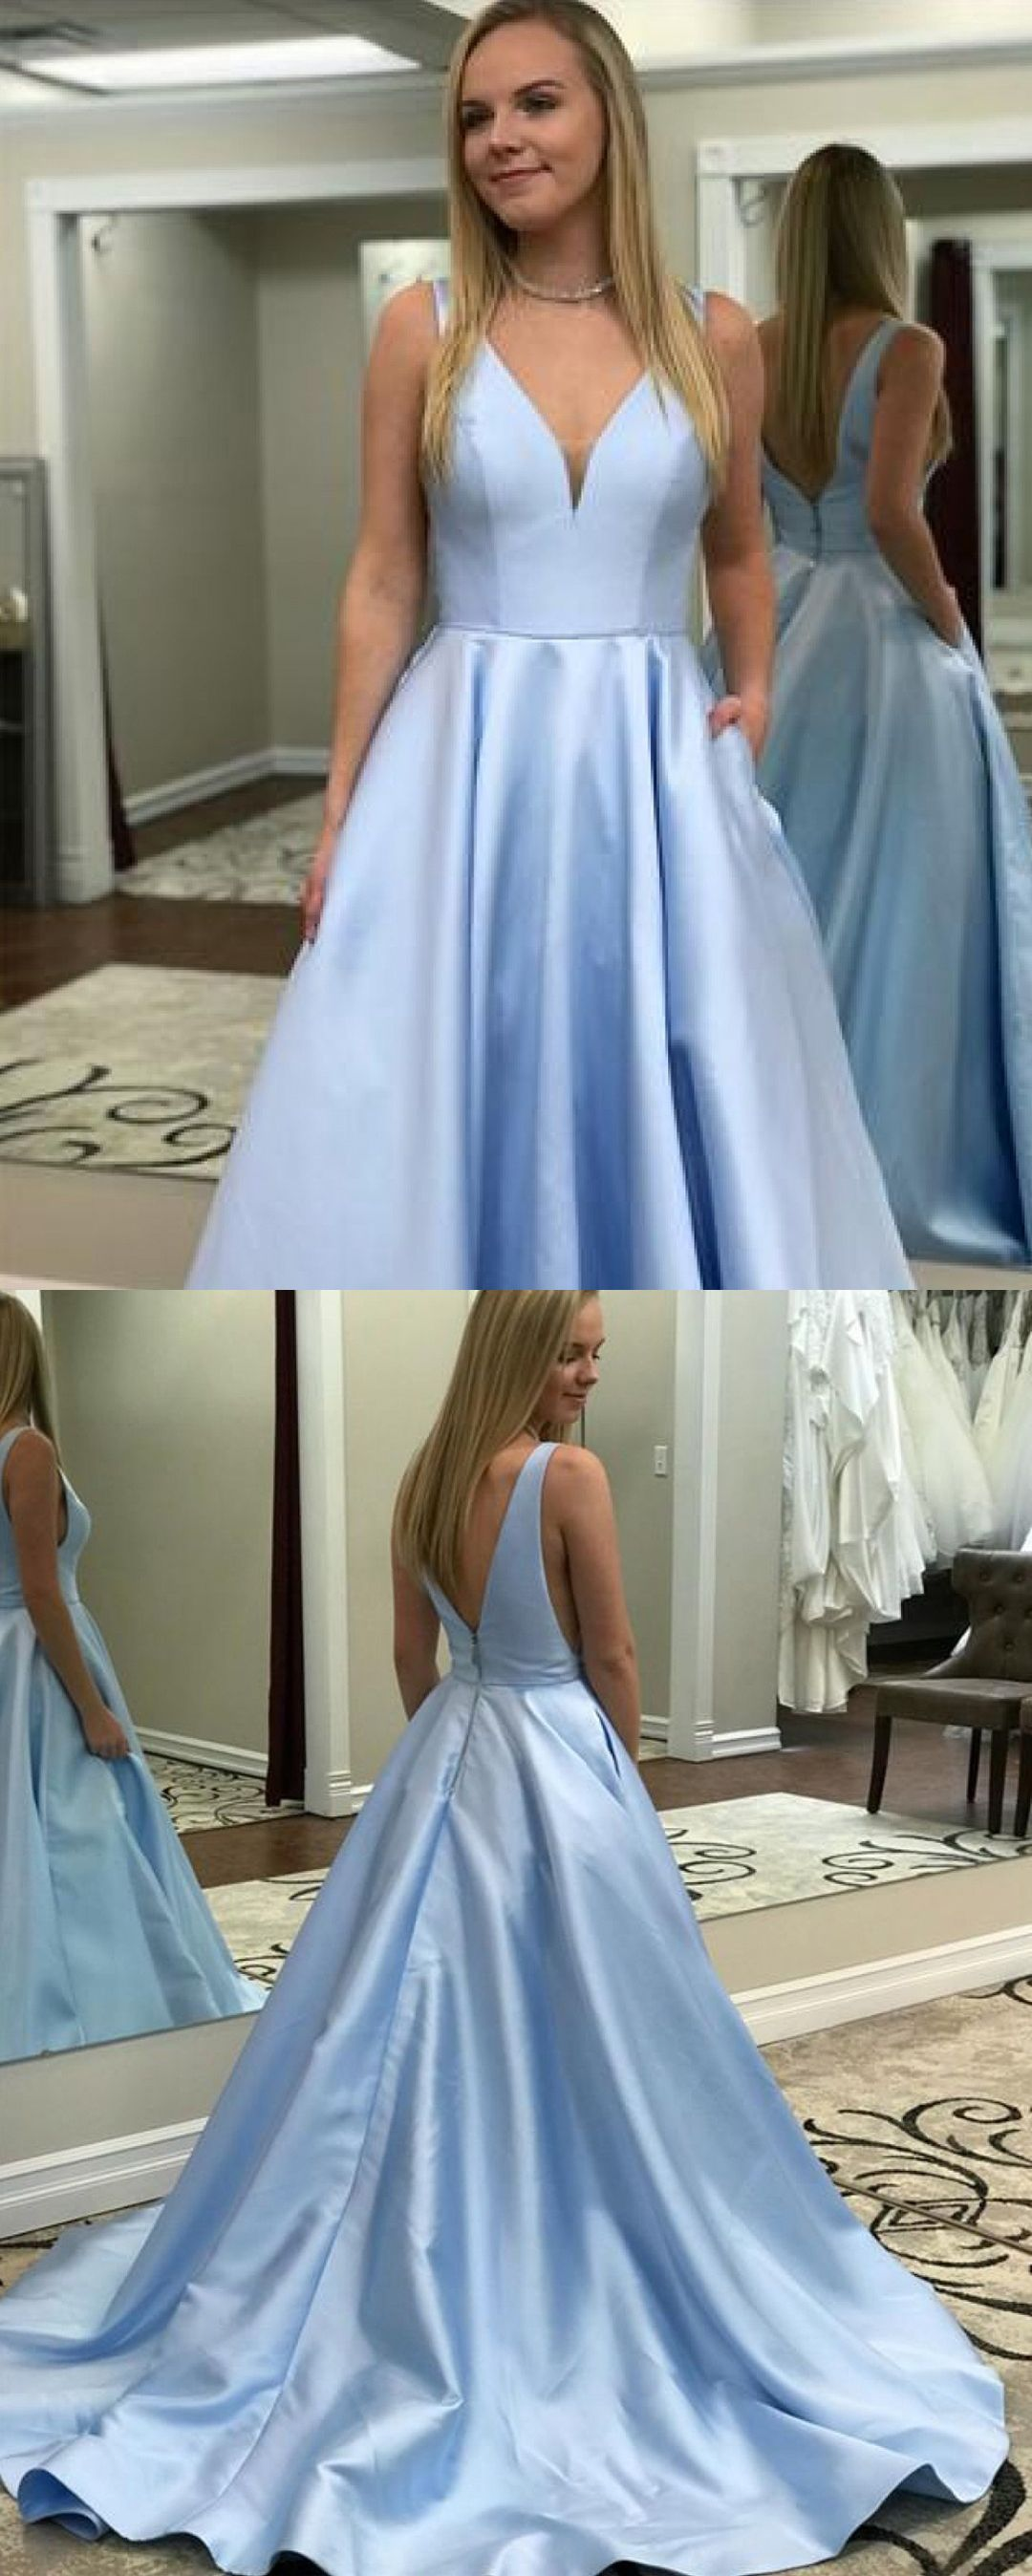 Vintage ball gown v neck open back prom dresses with train formal